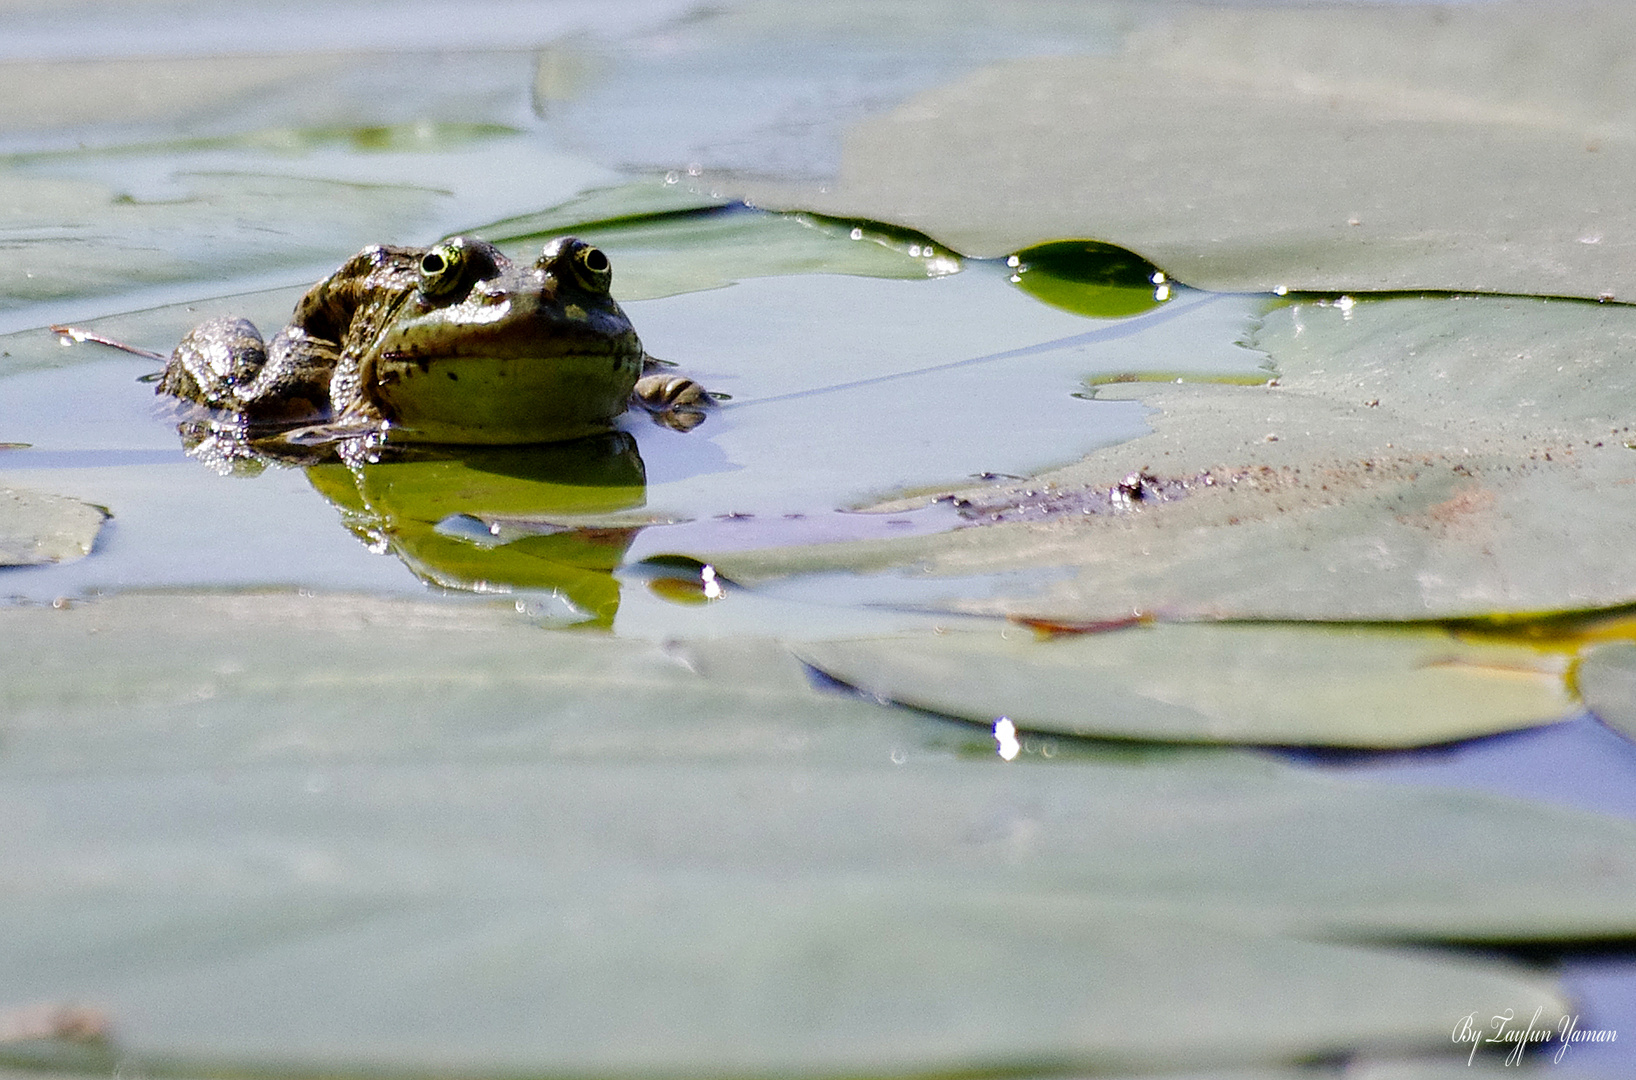 Frog in Golcuk Lake - Bolu